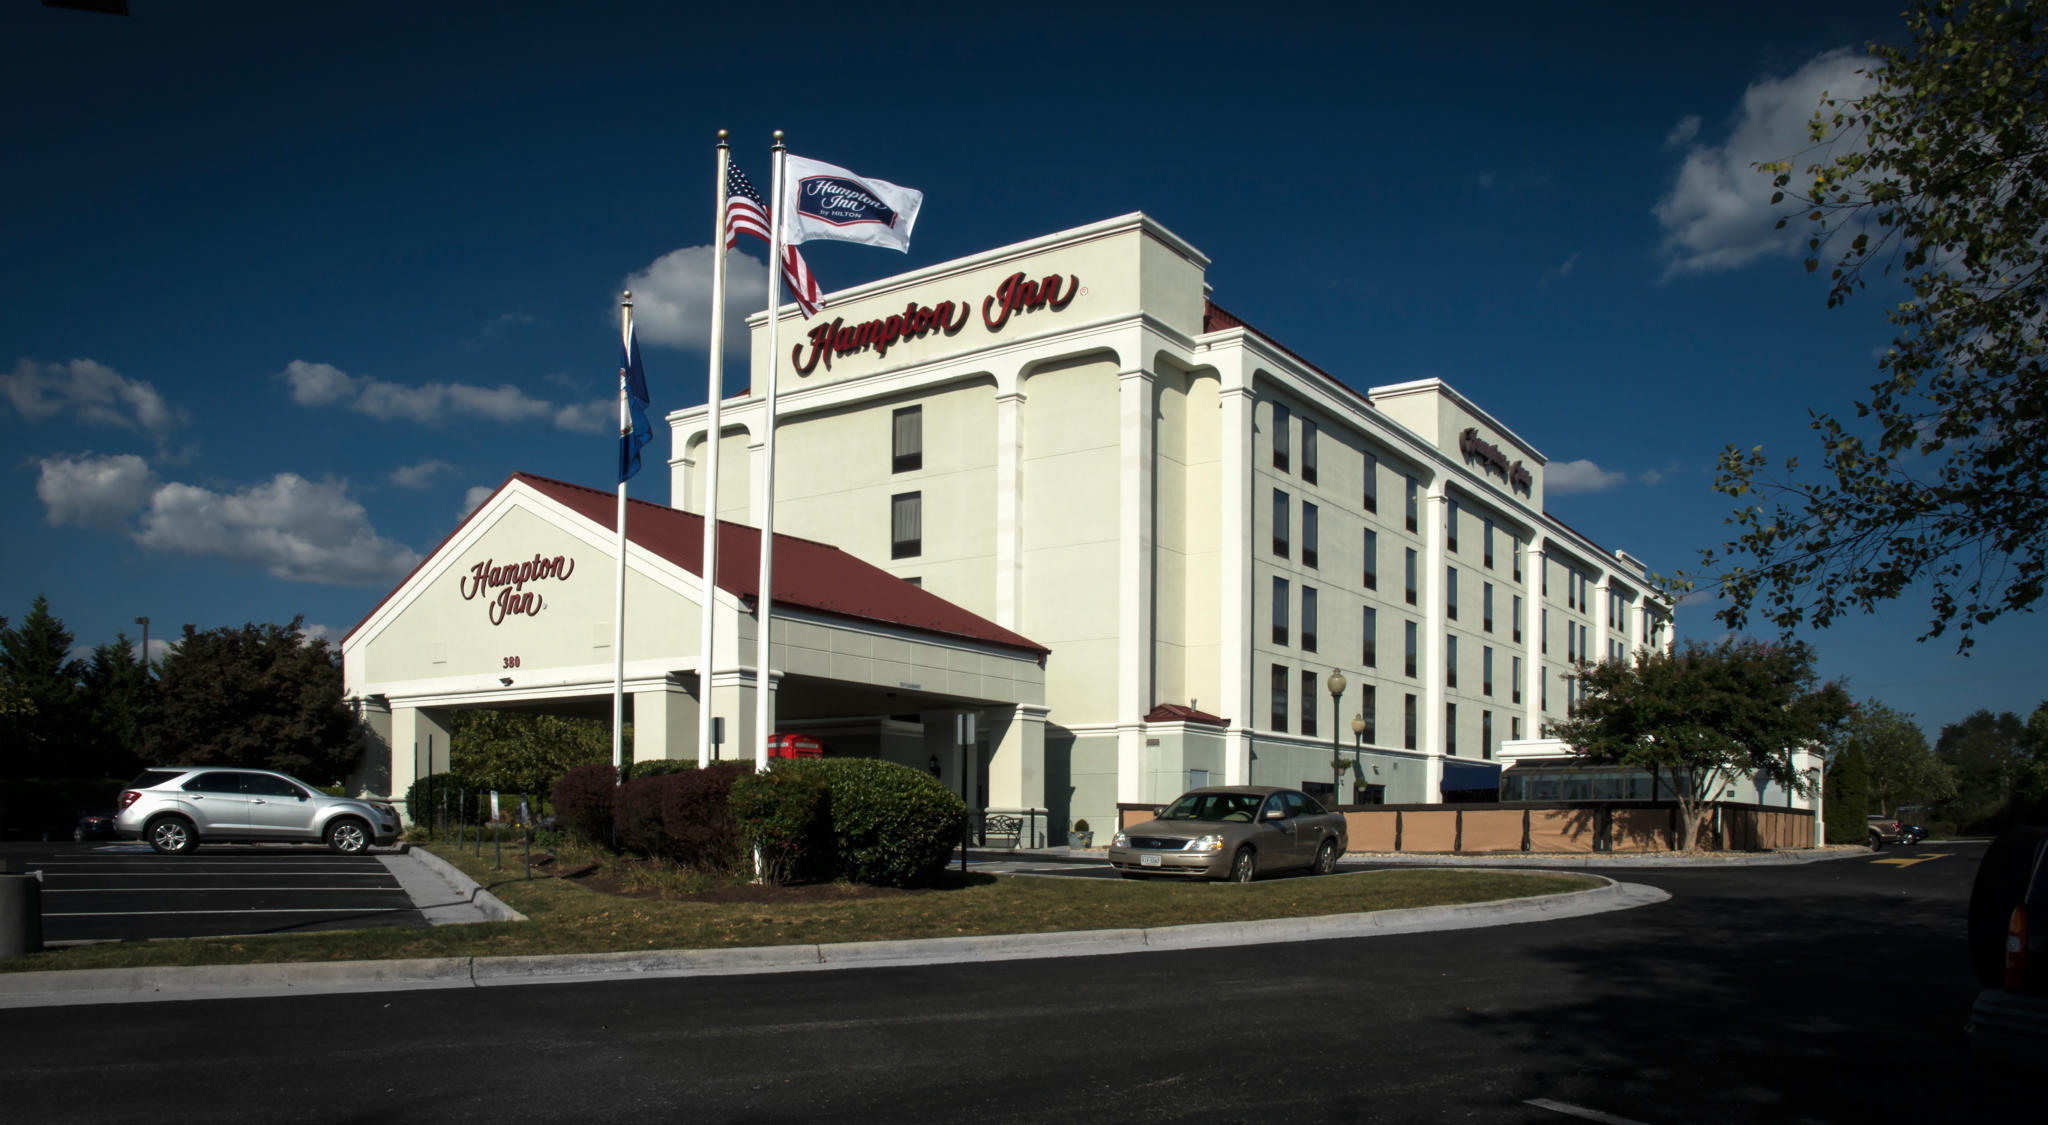 Hampton Inn Winston-Salem NC